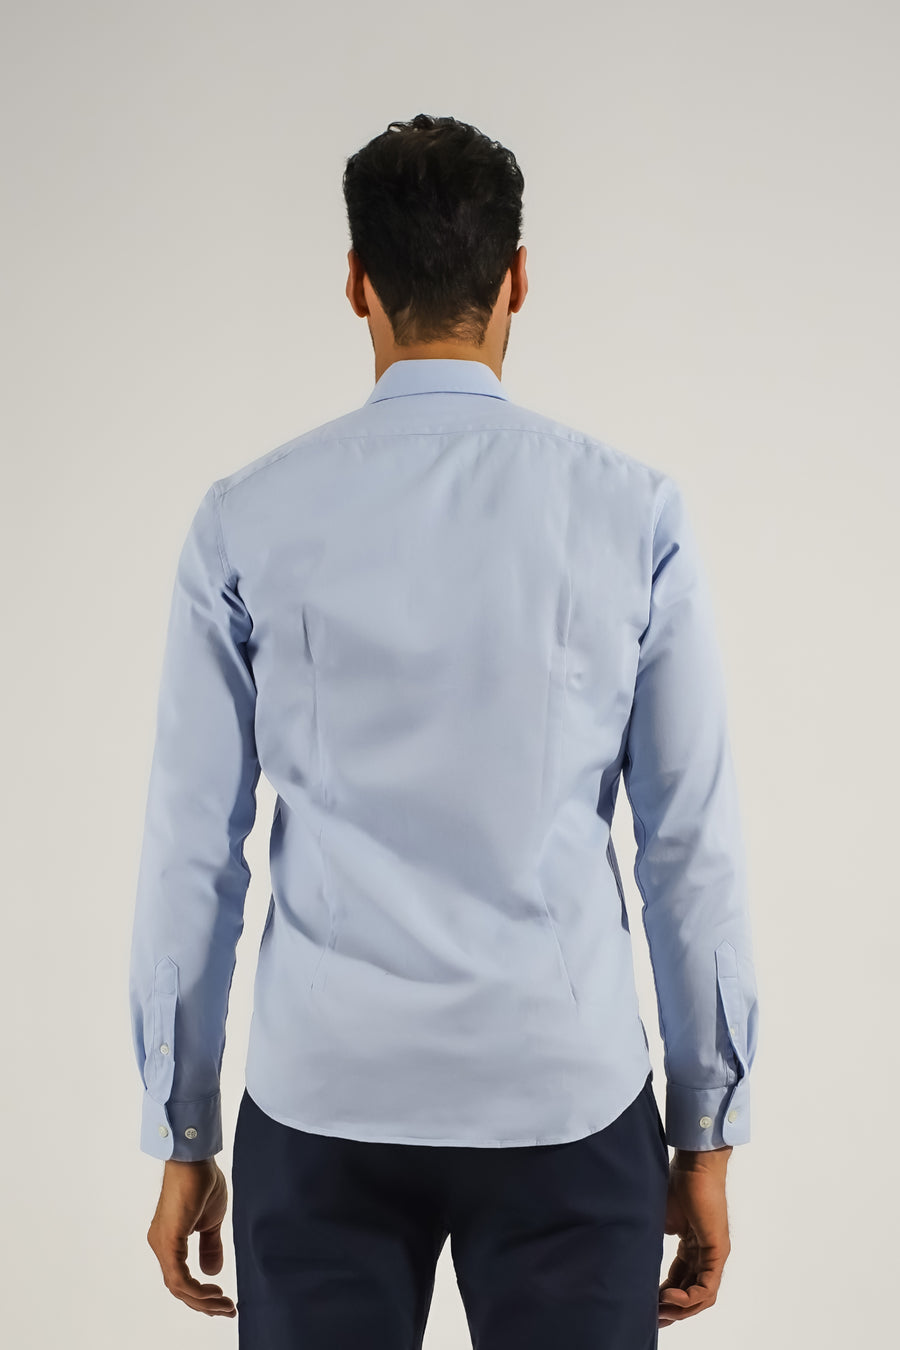 Oxformal Shirt v1.0